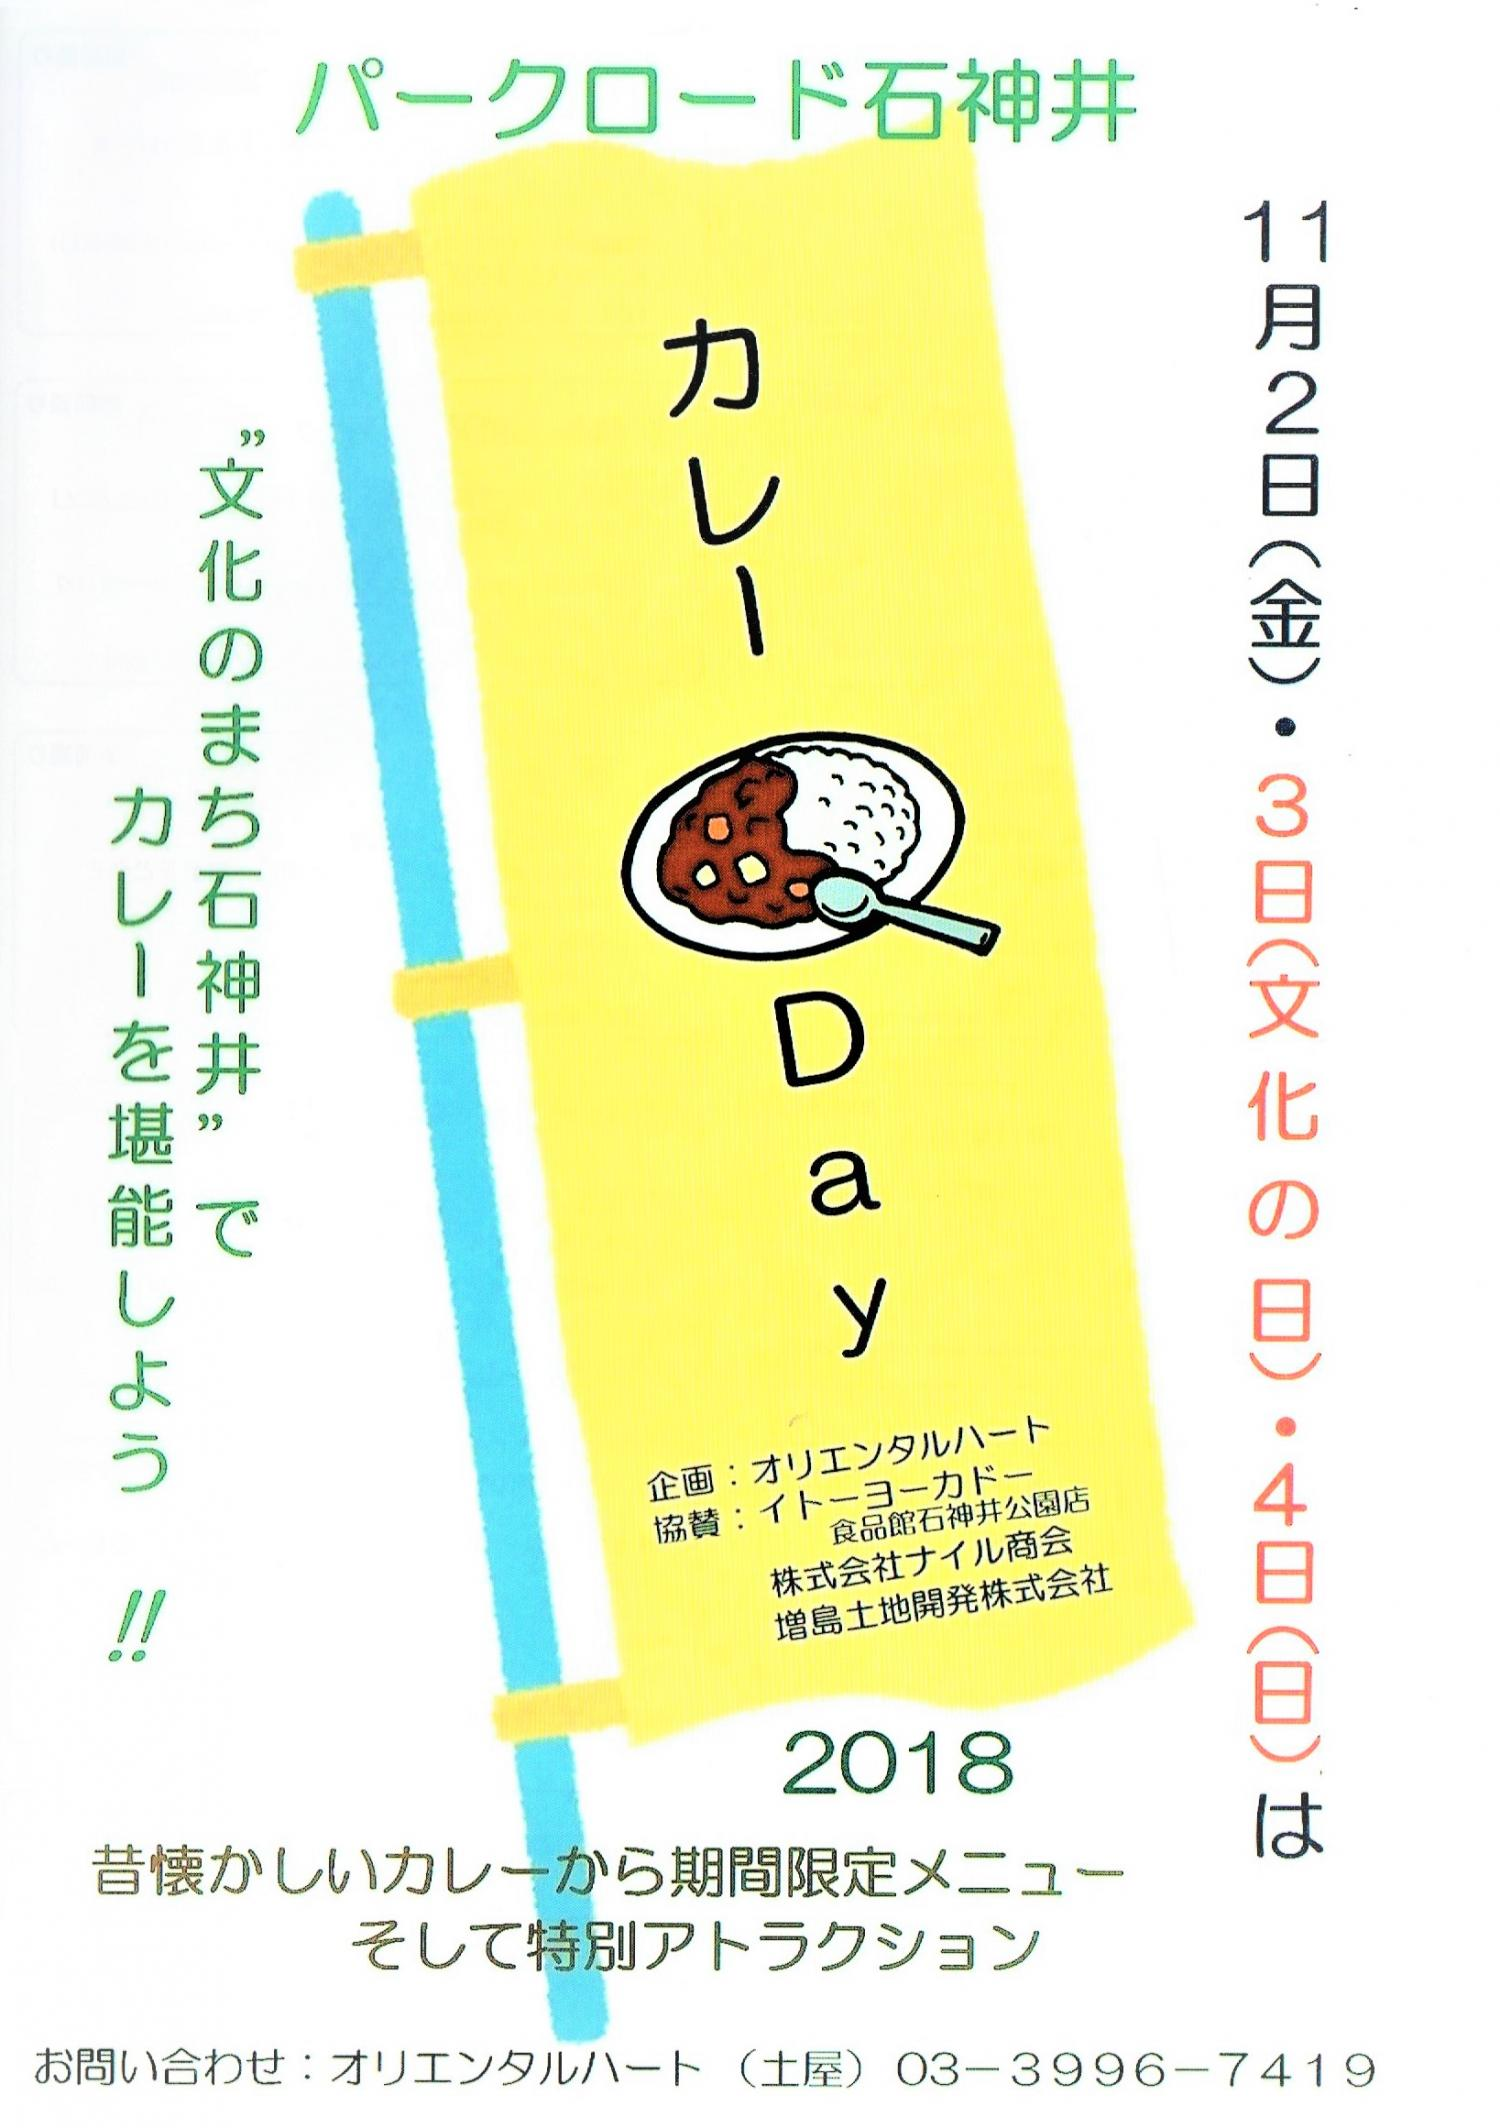 Park road Shakujii curry Day 2018 image